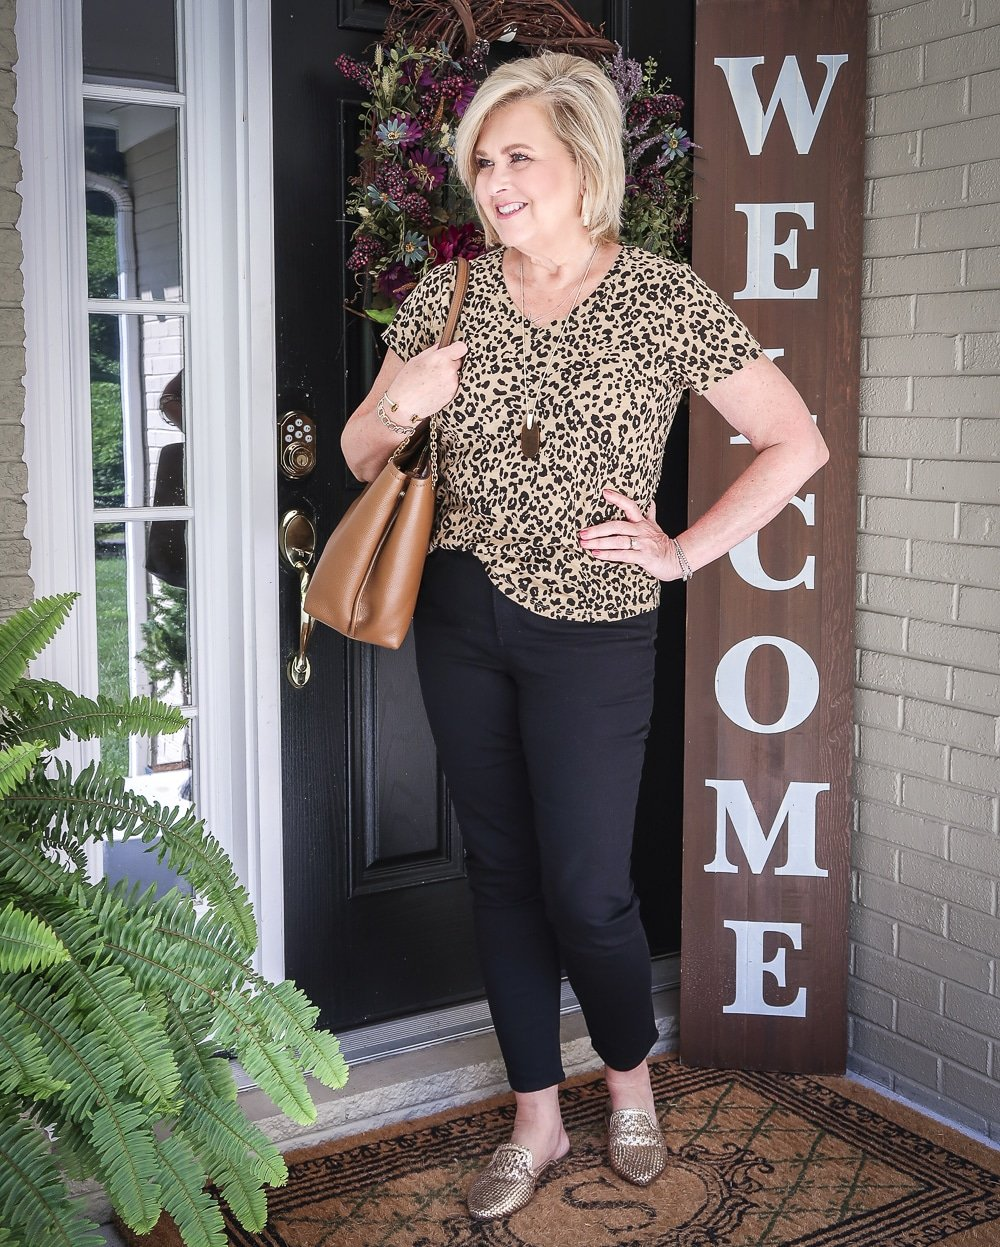 Fashion Blogger 50 Is Not Old is looking away and wearing a v-neck leopard tee, black girlfriend jeans, gold mules, and carrying a brown Tory Burch tote